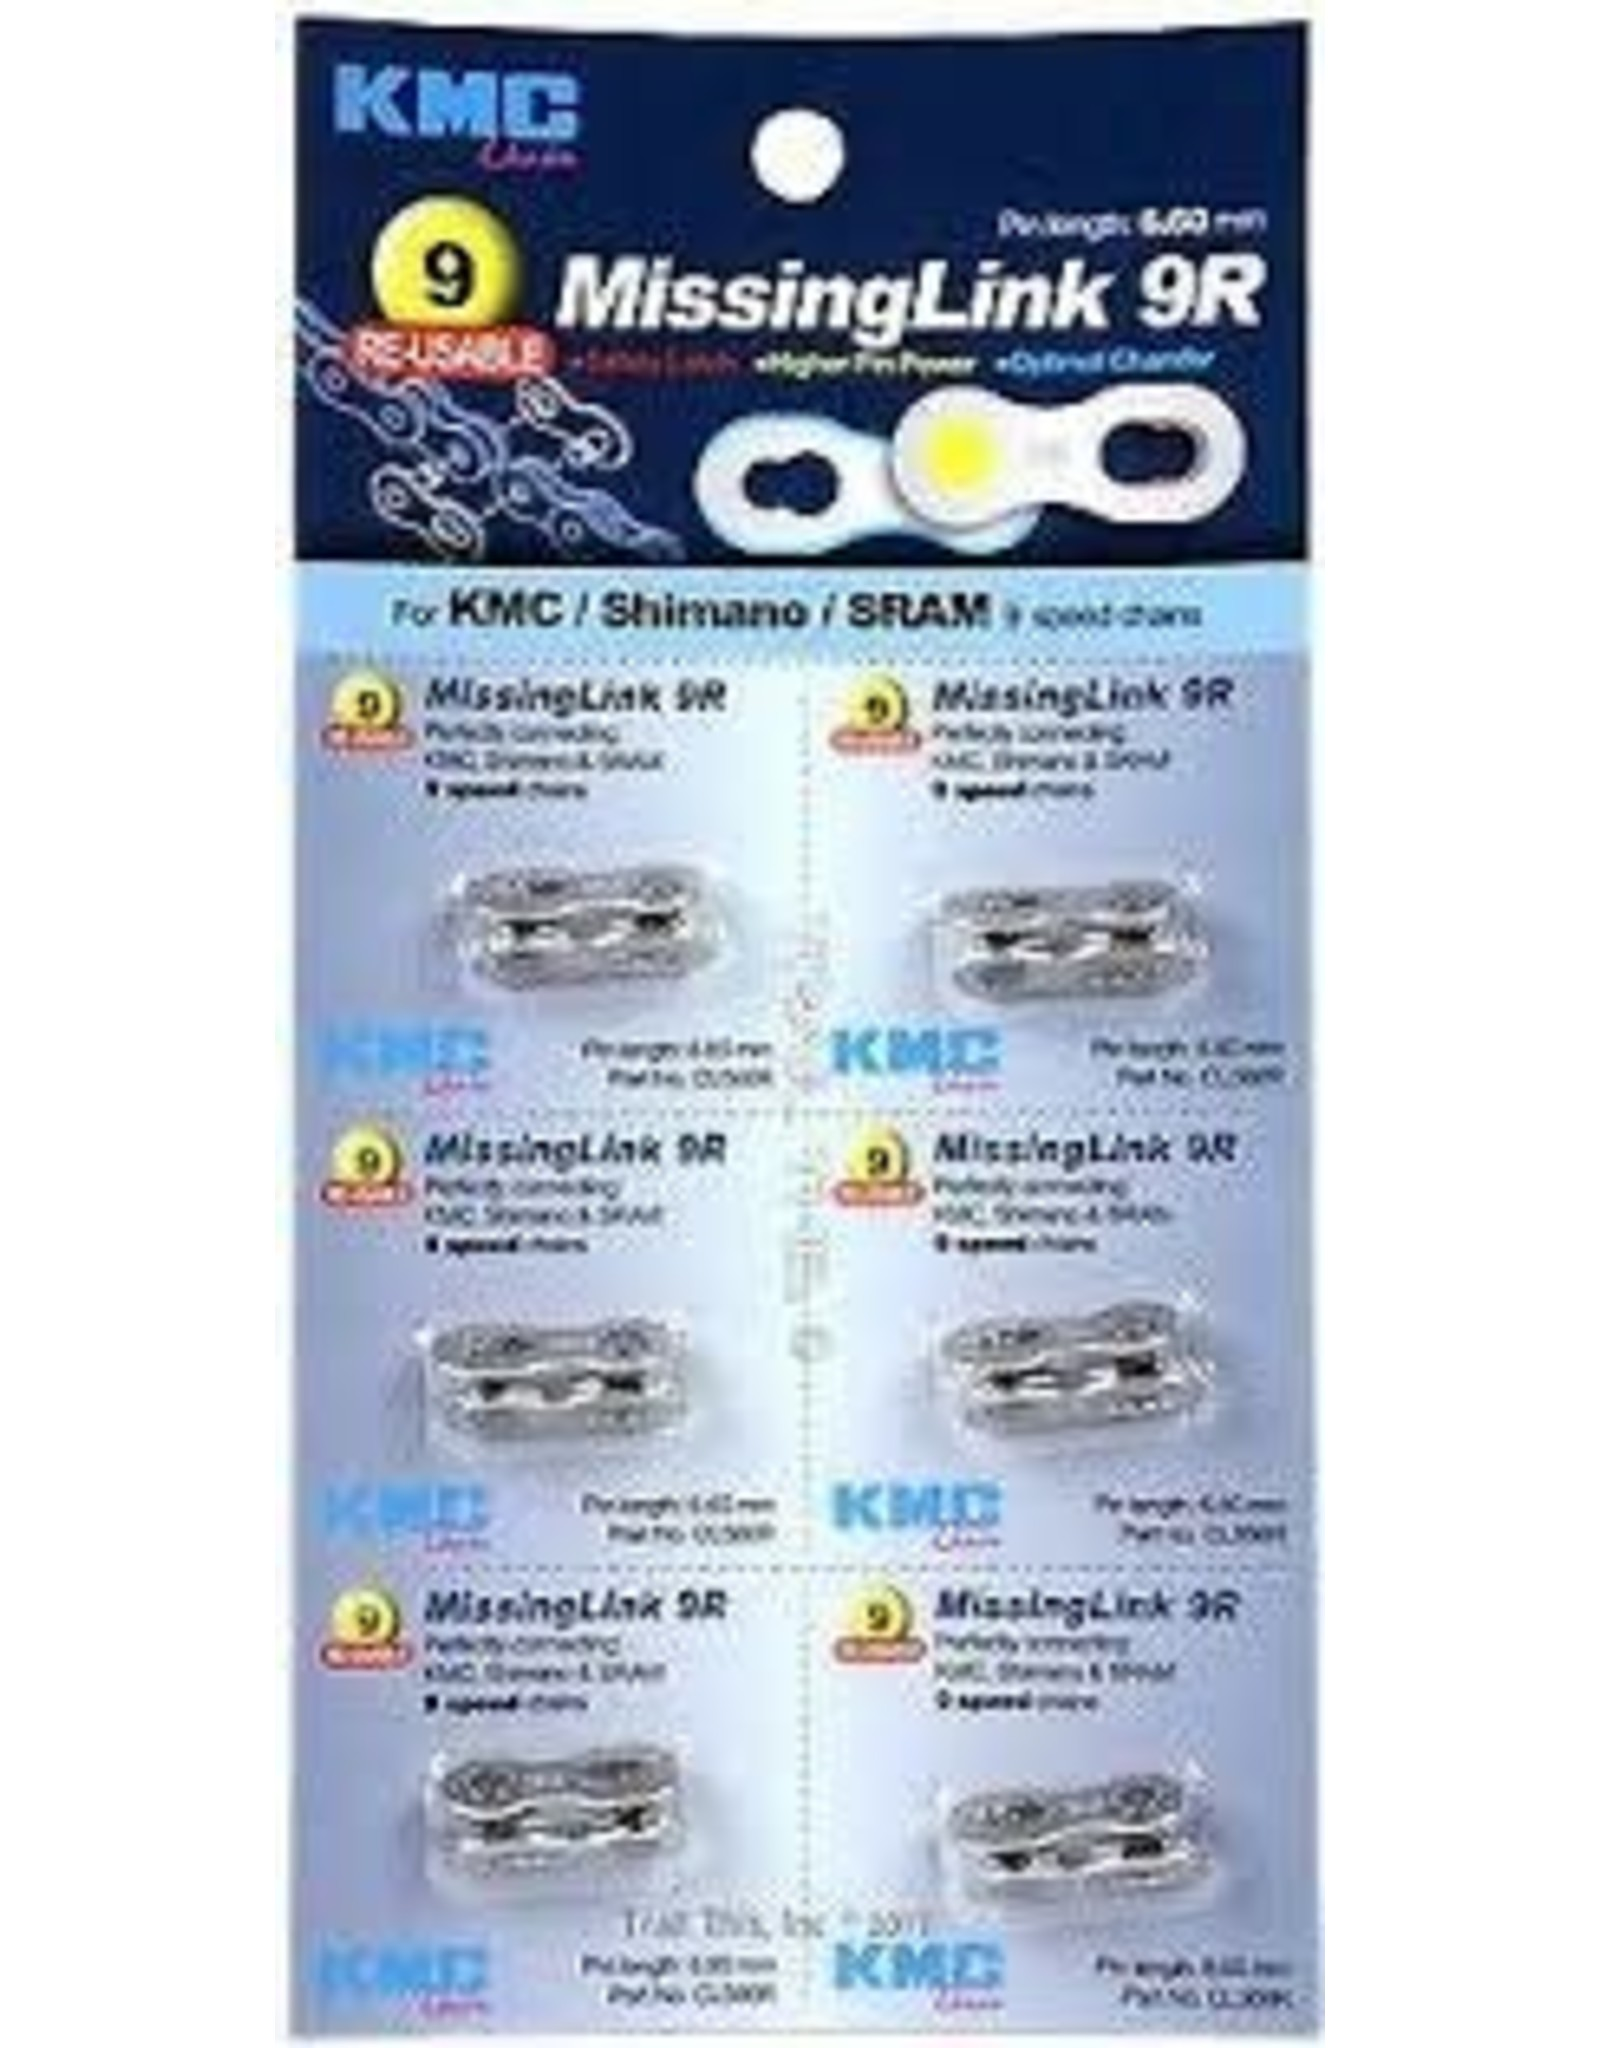 KMC Chain KMC Missing Link Fits 6.6mm (9-speed) Chains Card of 6